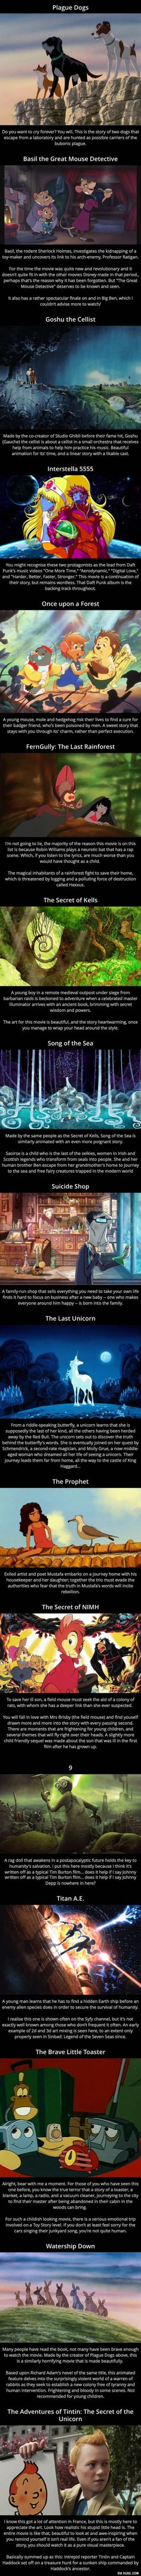 Underappreciated (or overlooked) animated movies<<< I've seen The Last Unicorn and The Secret of Nimh. - Underappreciated (or overlooked) animated movies Film D'animation, Film Serie, Stuff To Do, Random Stuff, Cool Stuff, Movies Showing, Movies And Tv Shows, Movies To Watch, Good Movies